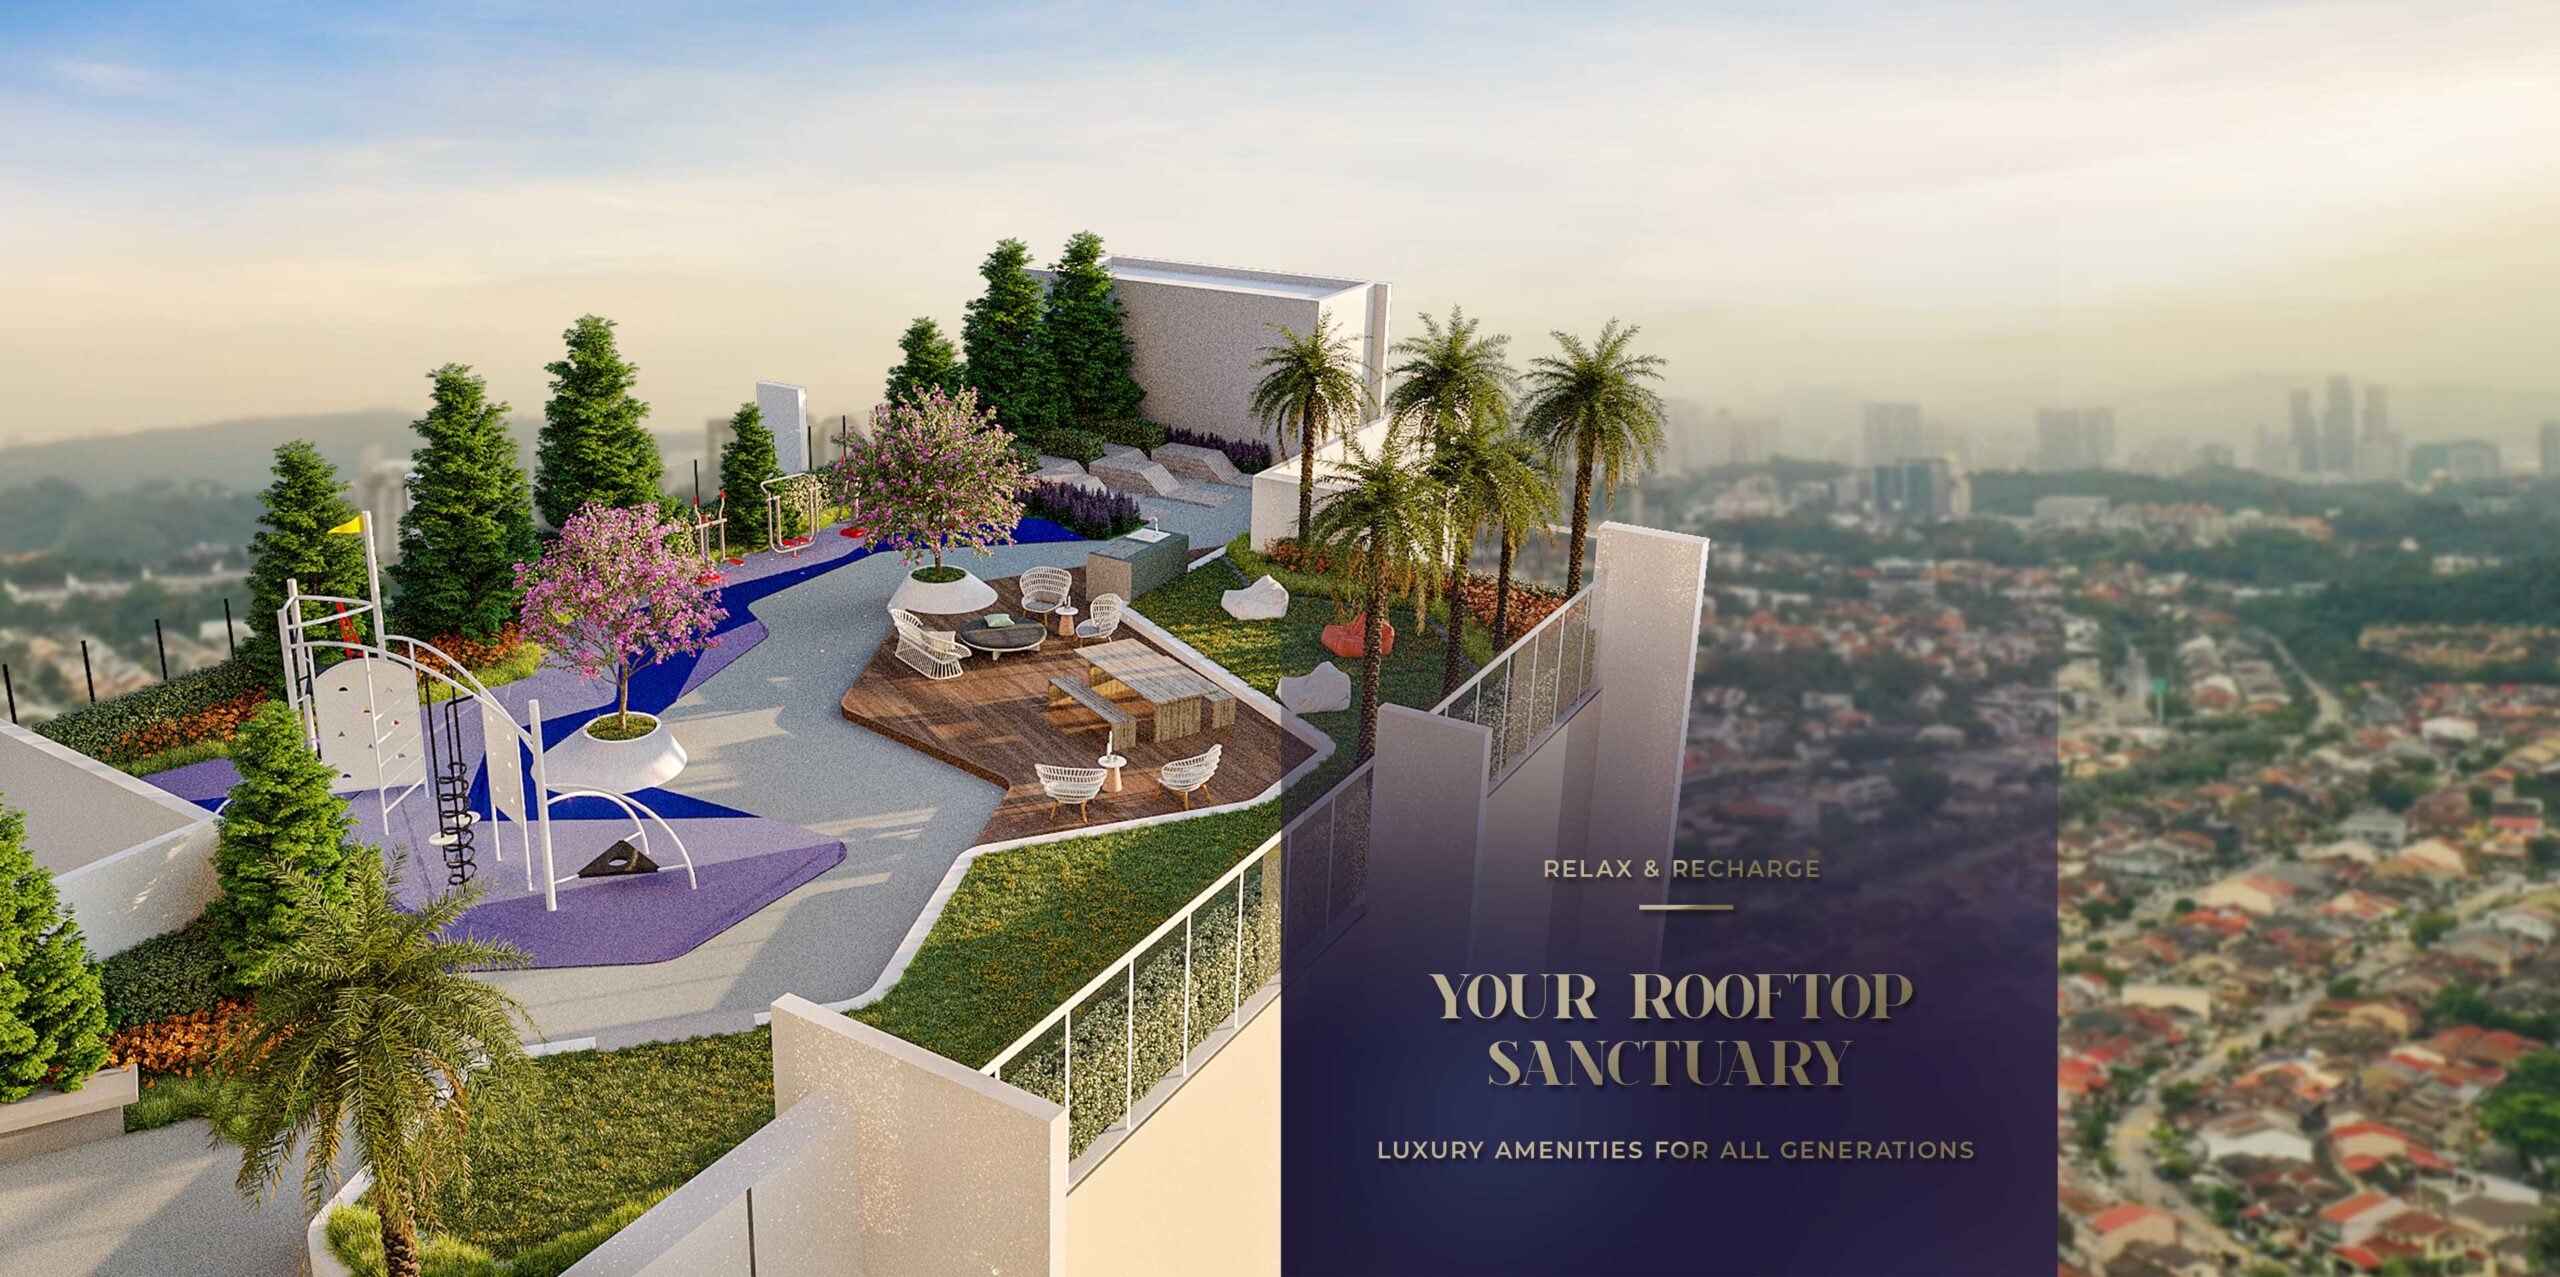 Rooftop view of Bangsar from Alfa Bangsar's sky garden with text: Relax and Recharge. Your rooftop sanctuary. Luxury amenities for all generations.